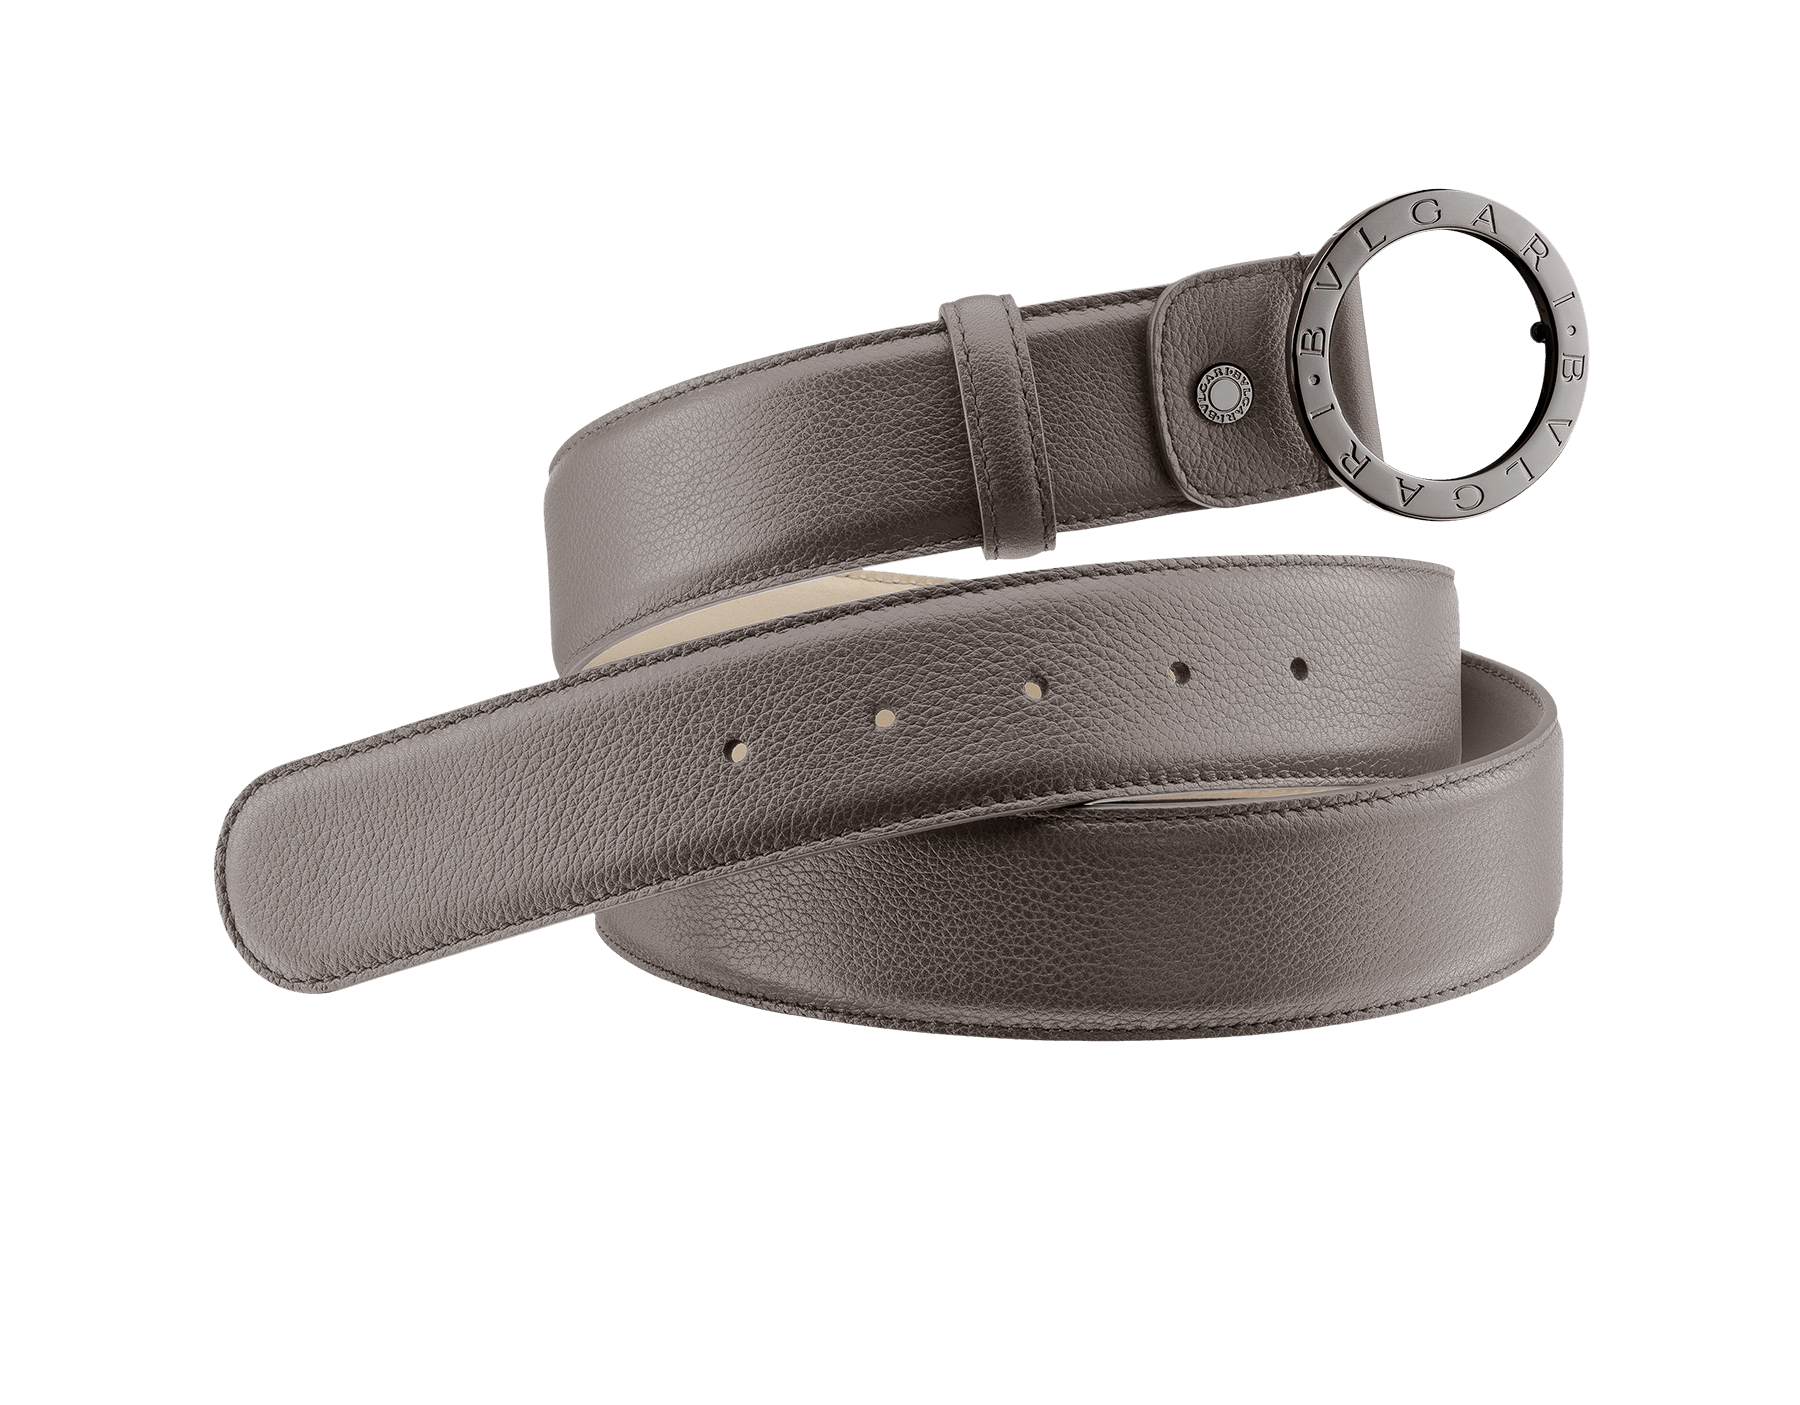 Man Belt in smoky quartz full grain calf leather with iconic round BVLGARI BVLGARI closure in dark ruthenium plated hardware. Also available in other colours and materials in-store. Resizable/Adjustable ROUND-CURVED-fgcl image 2